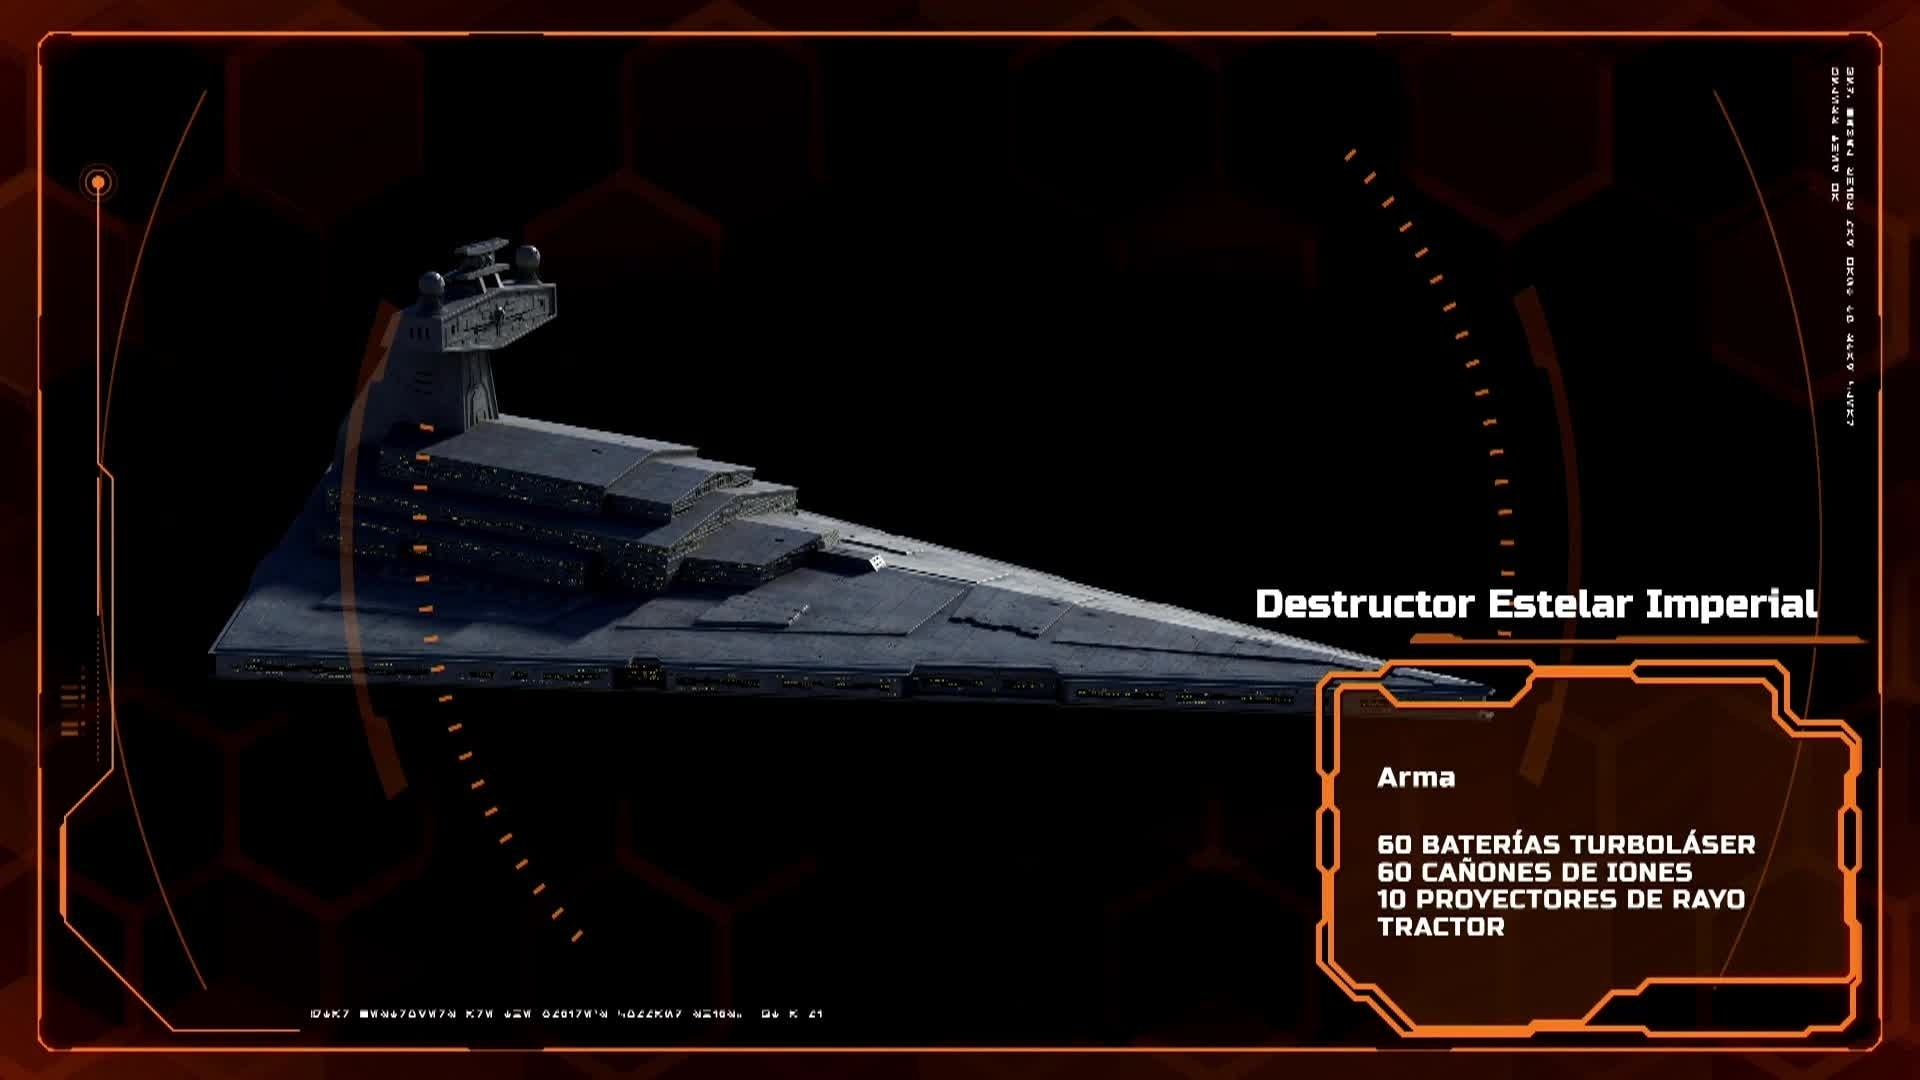 Secrets of the Rebels -DESTRUCTOR ESTELAR